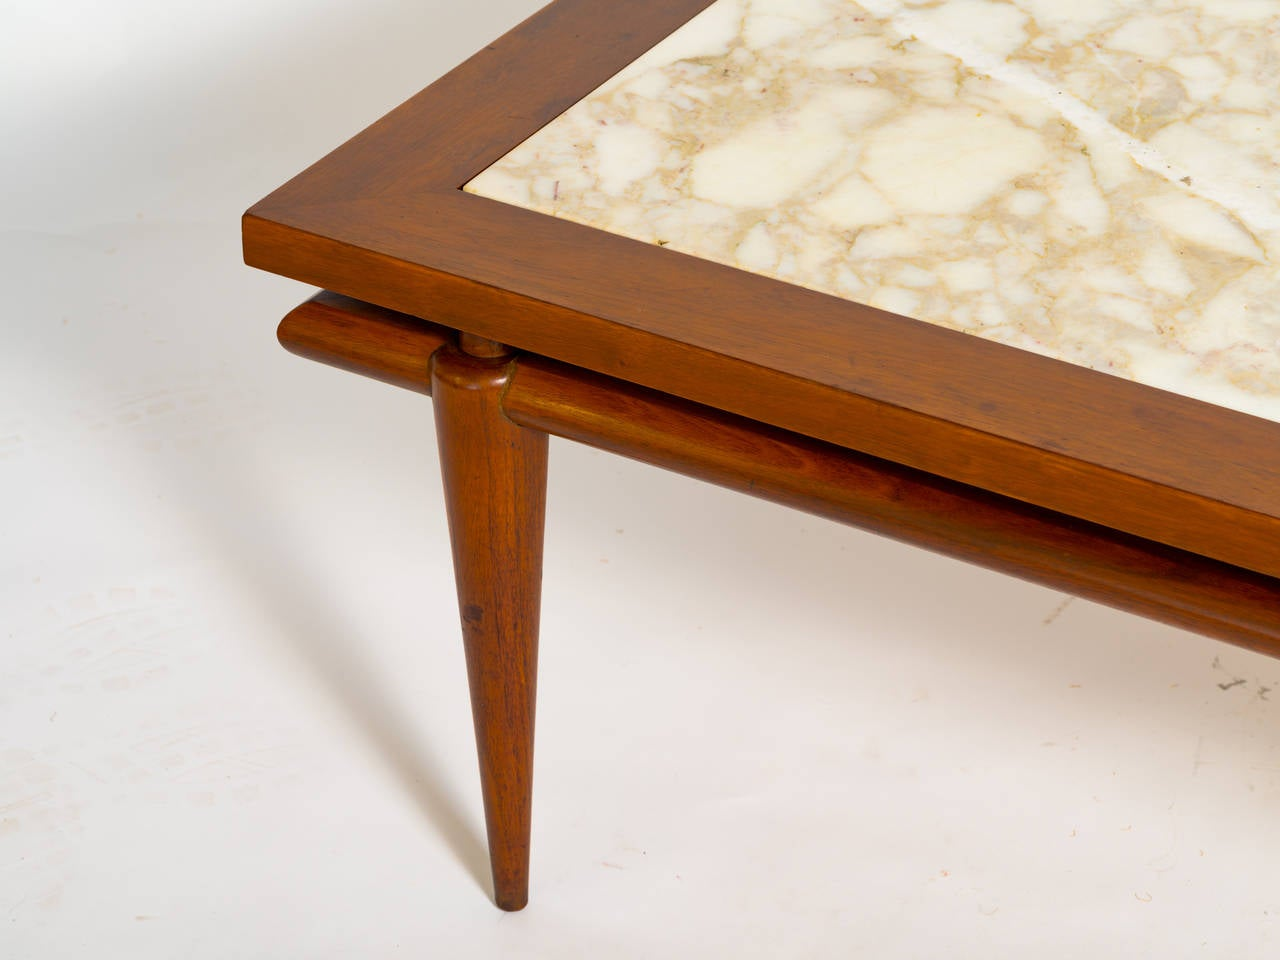 Robsjohn gibbings marble and walnut coffee table at 1stdibs for Marble and walnut coffee table